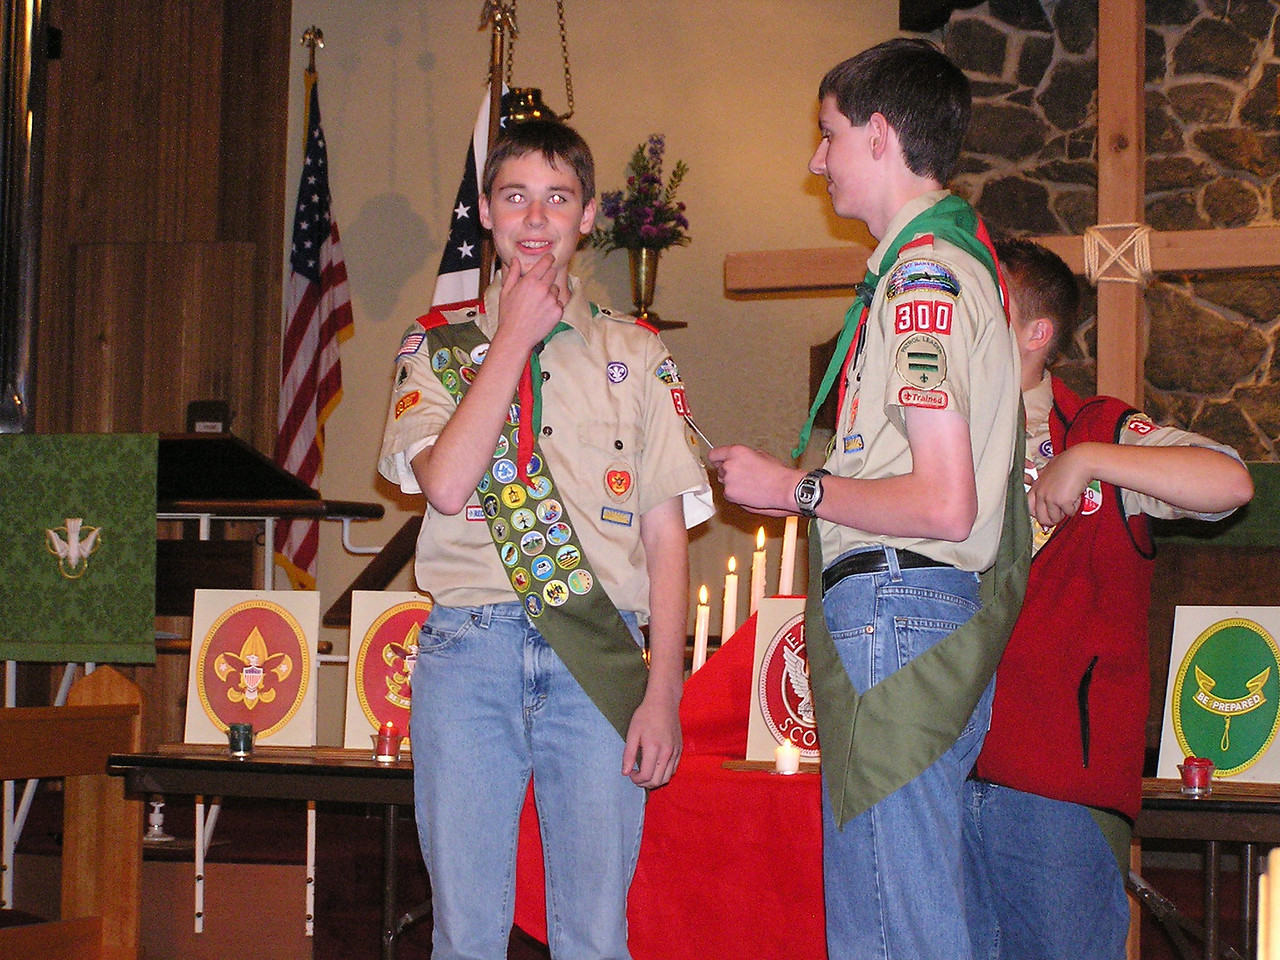 03-09-08 Kevin, Scouts 013